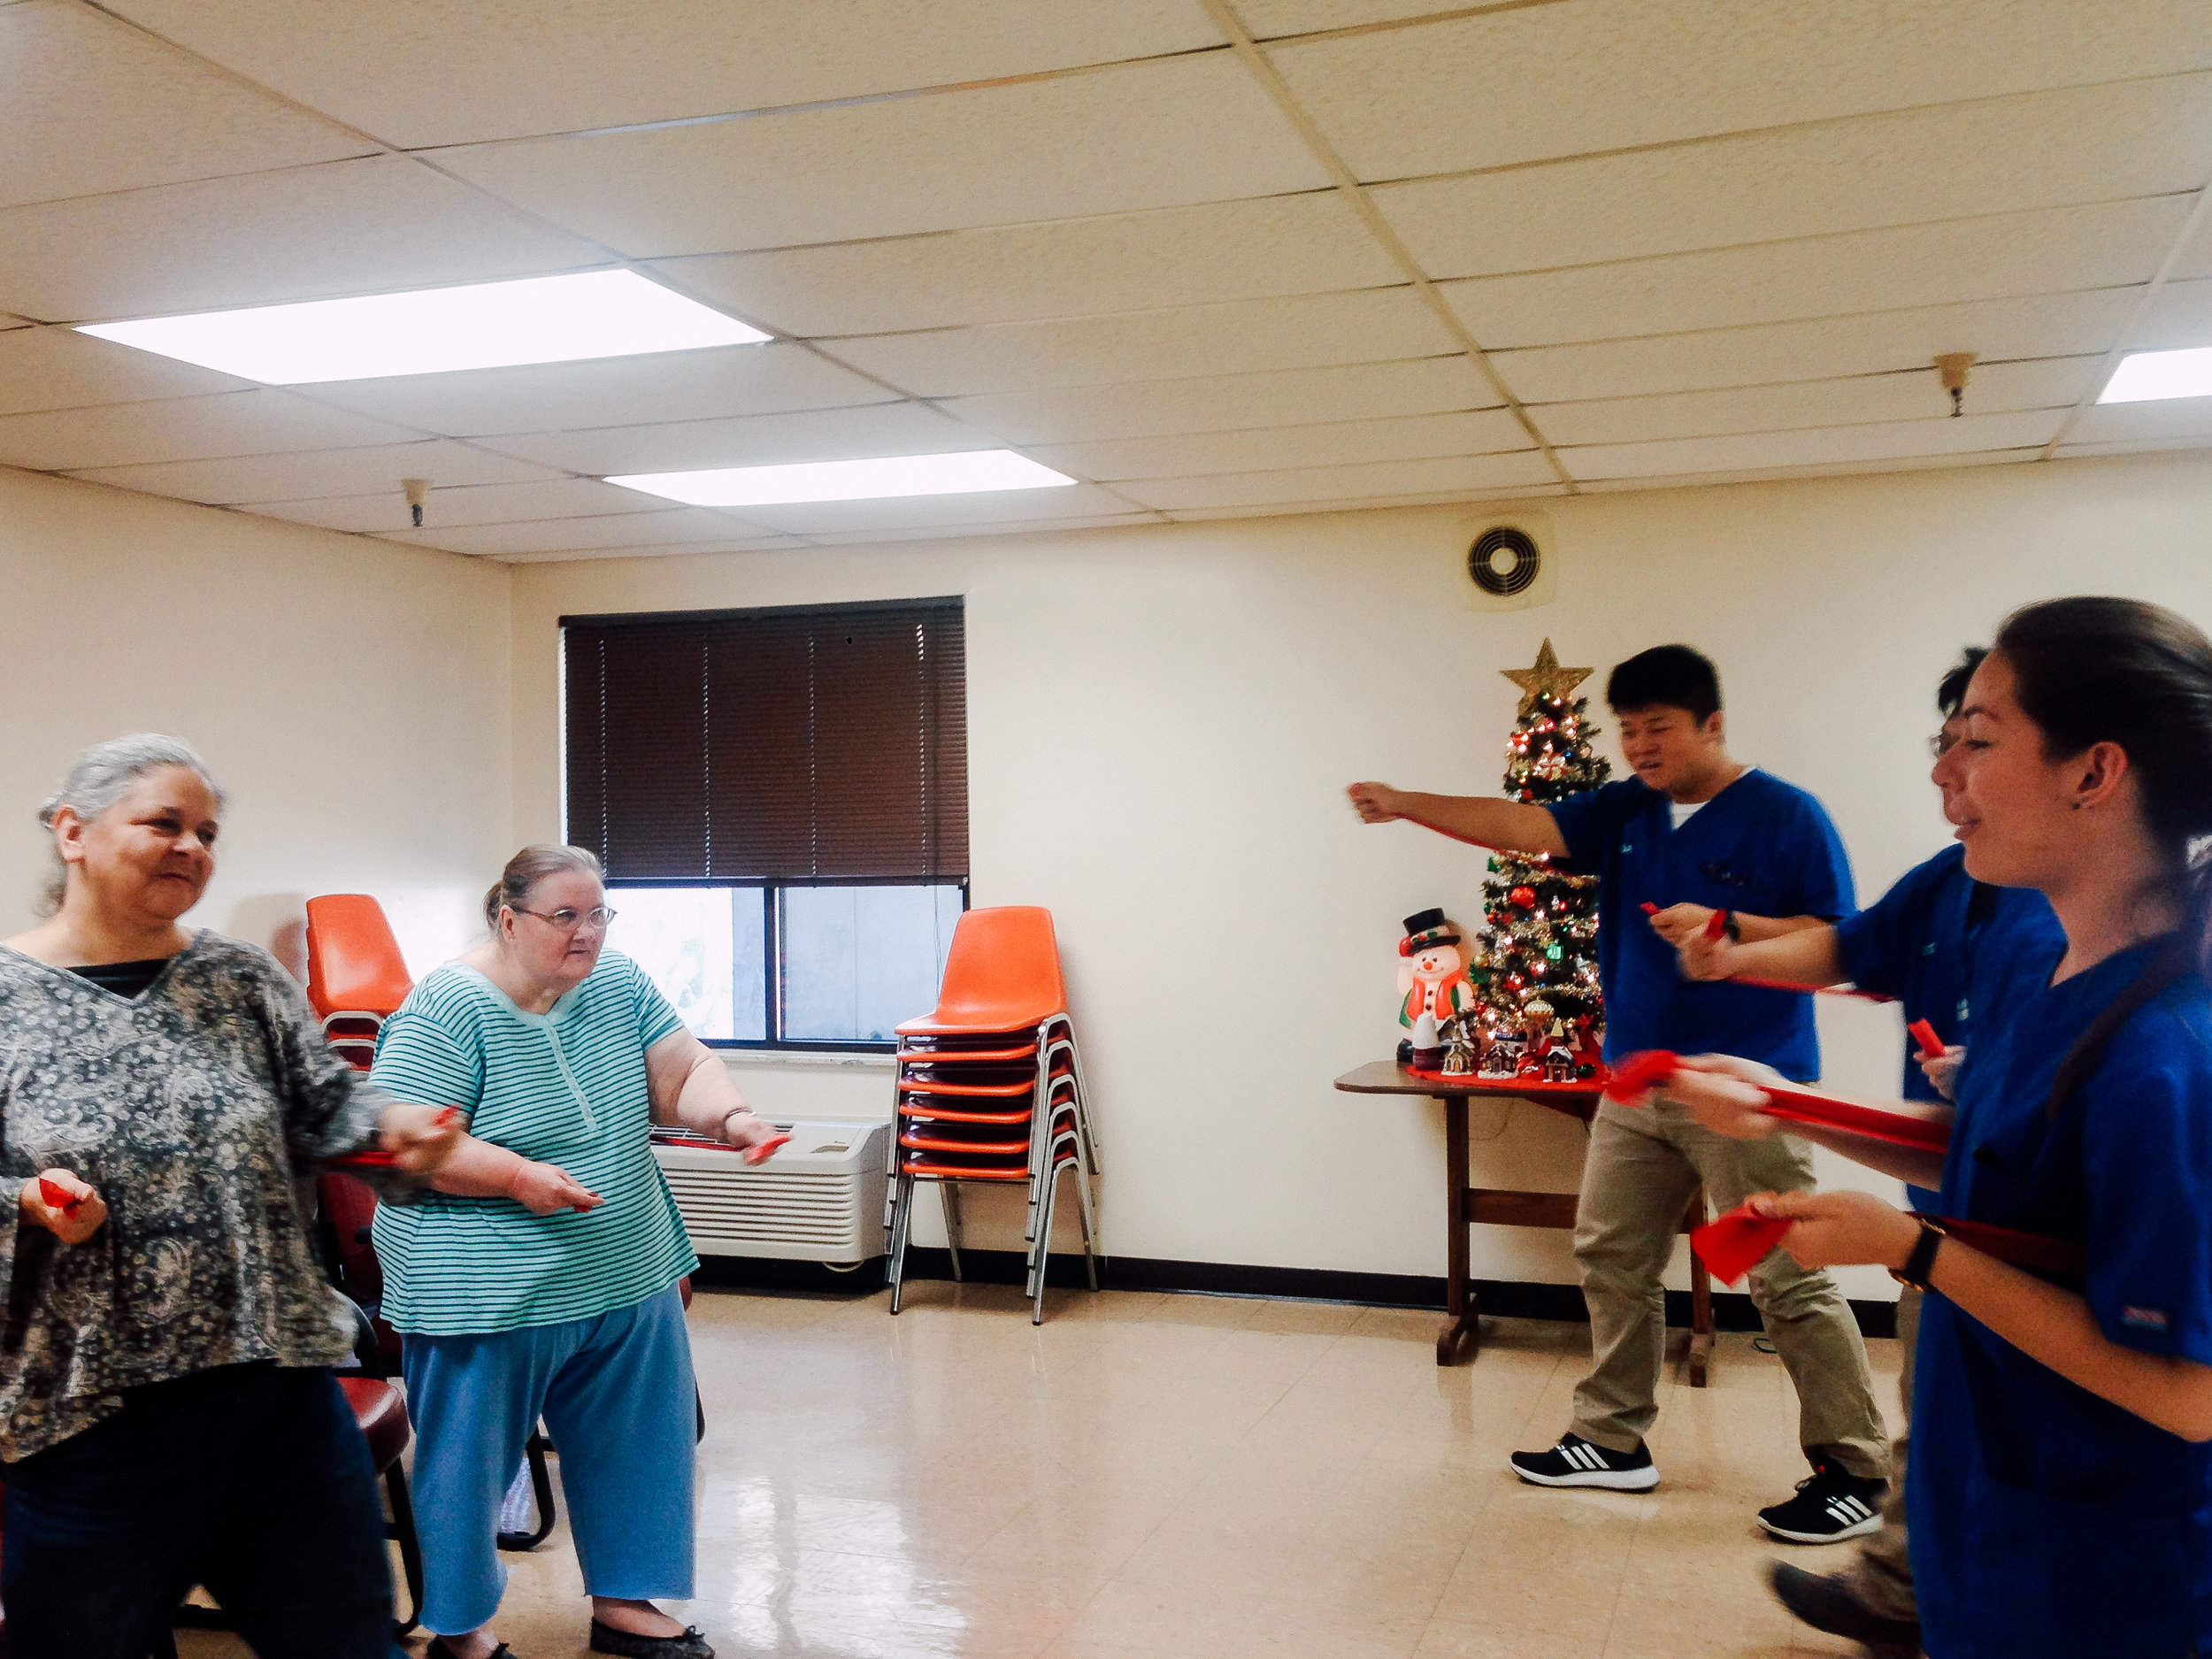 At a health fair teaching patients how to do resistance band exercises